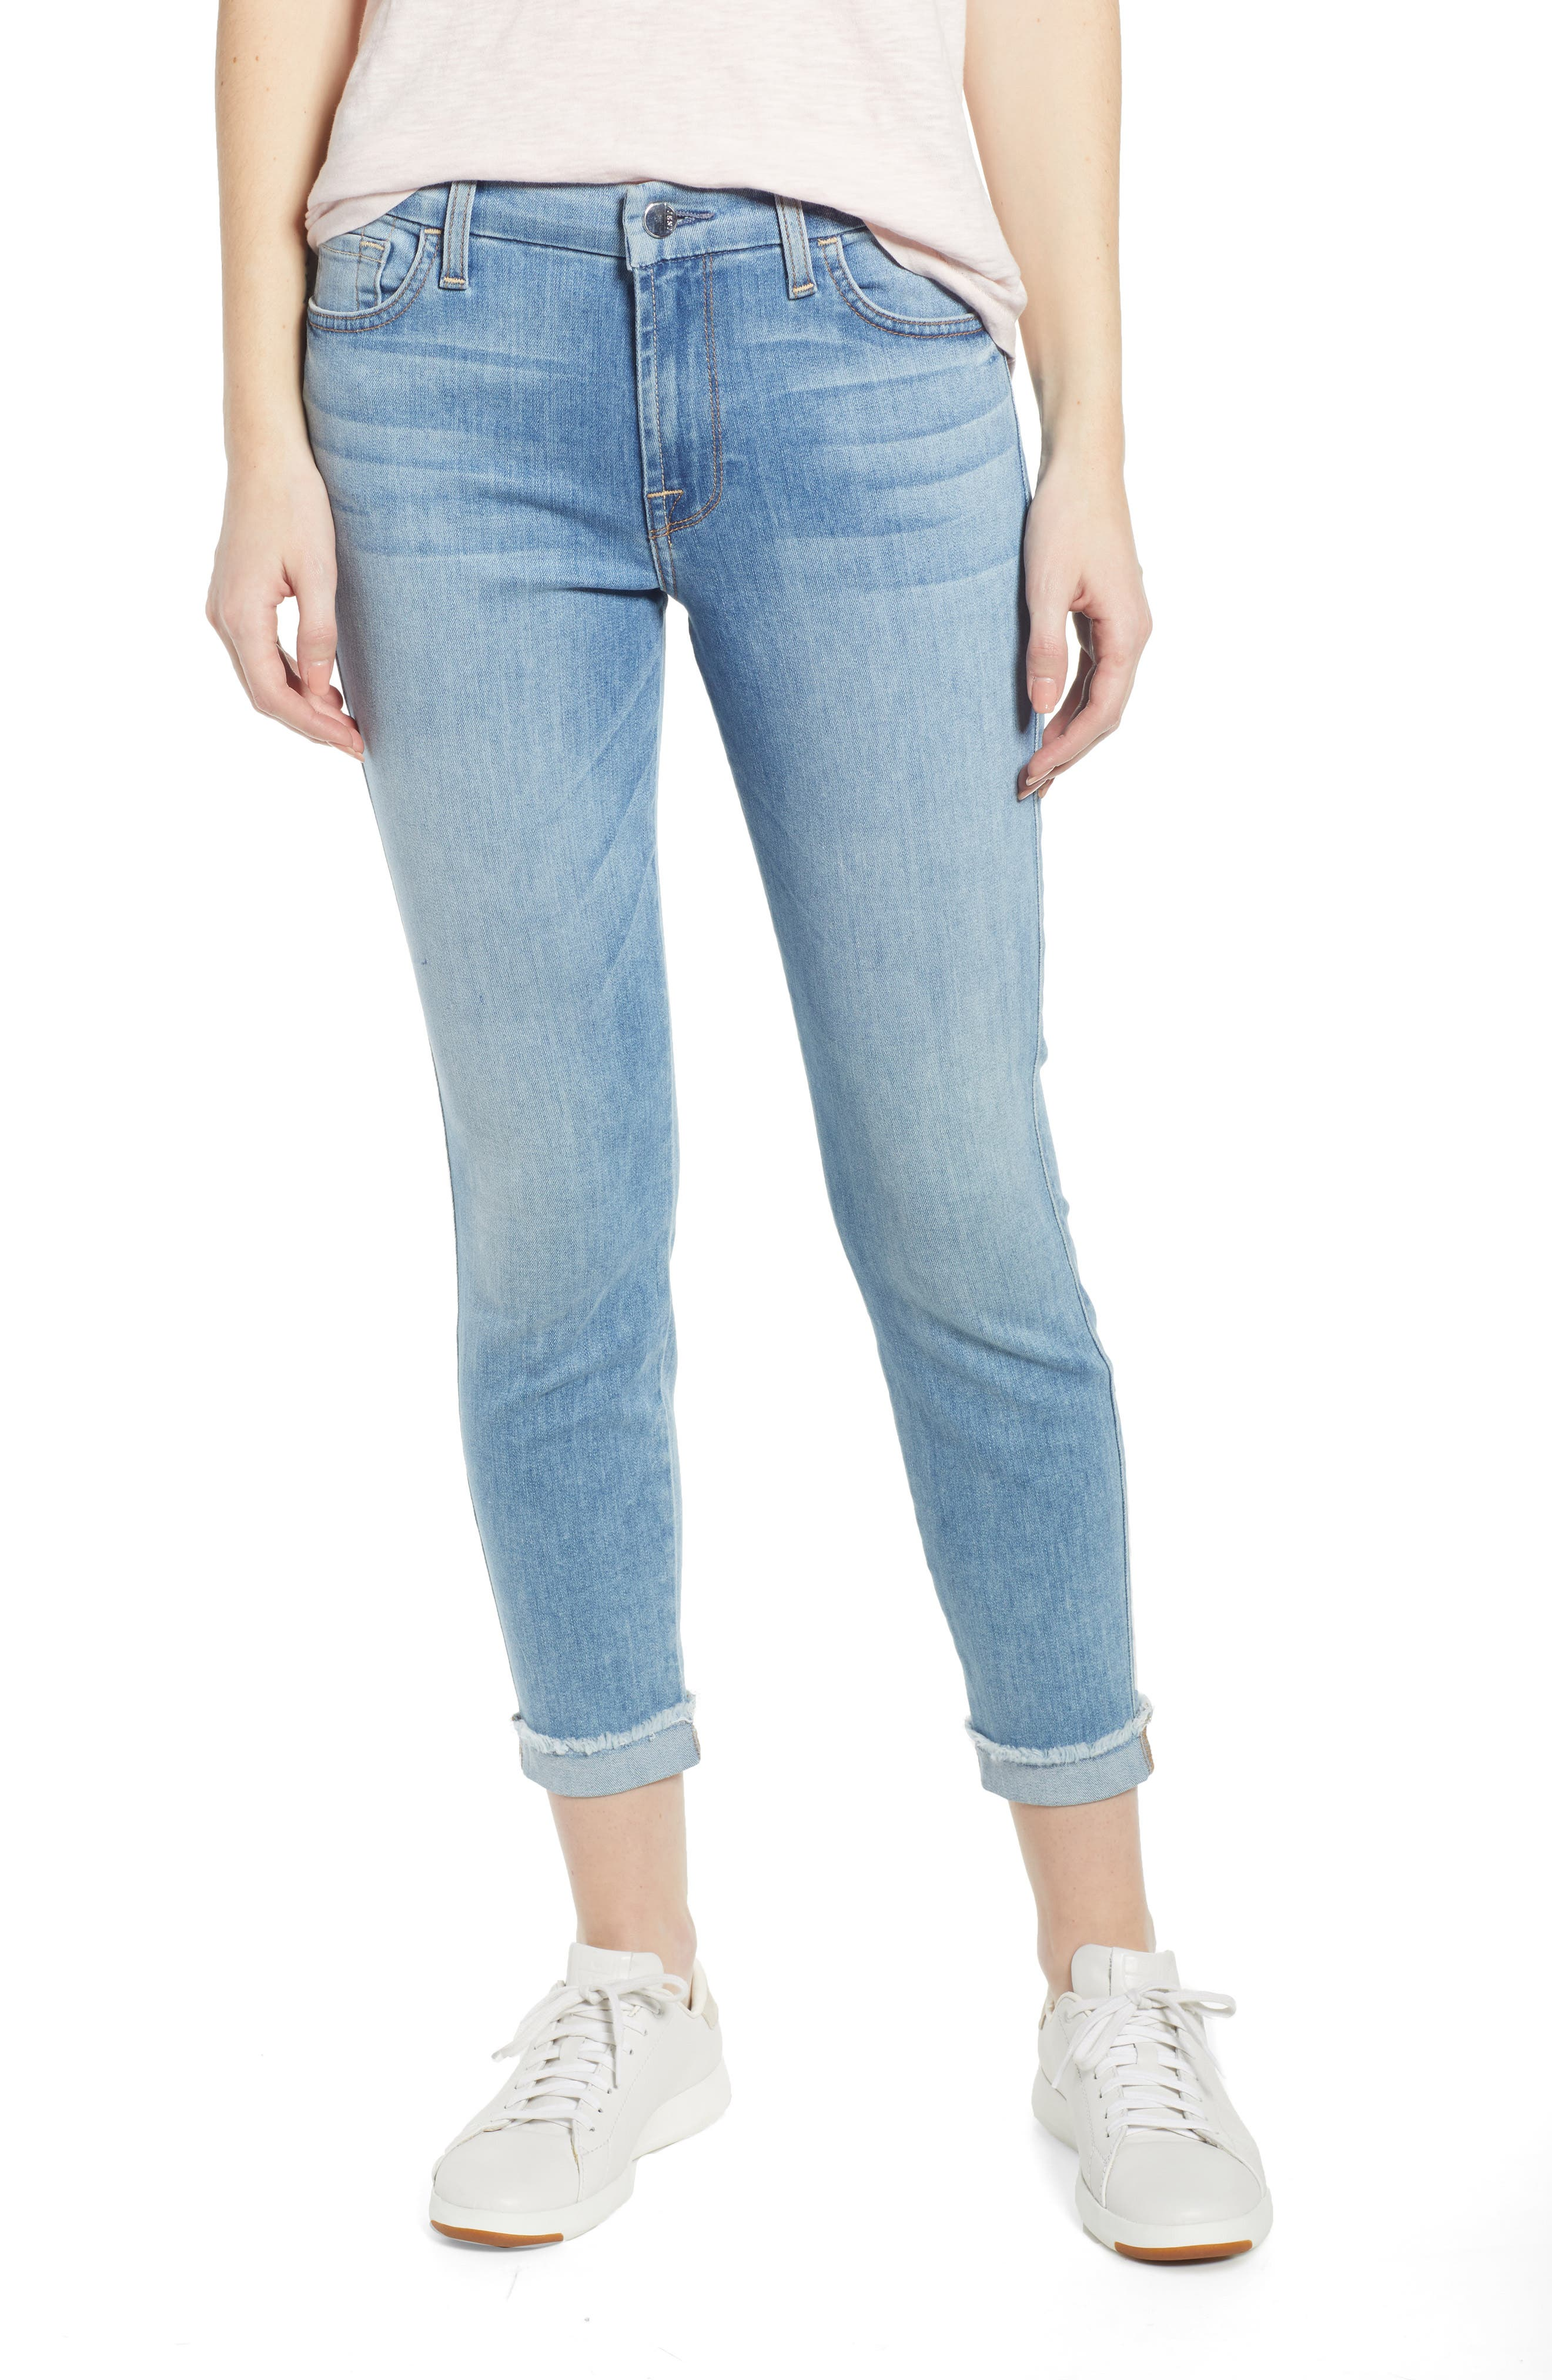 JEN7 BY 7 FOR ALL MANKIND Cuffed Crop Skinny Jeans, Main, color, LA QUINTA